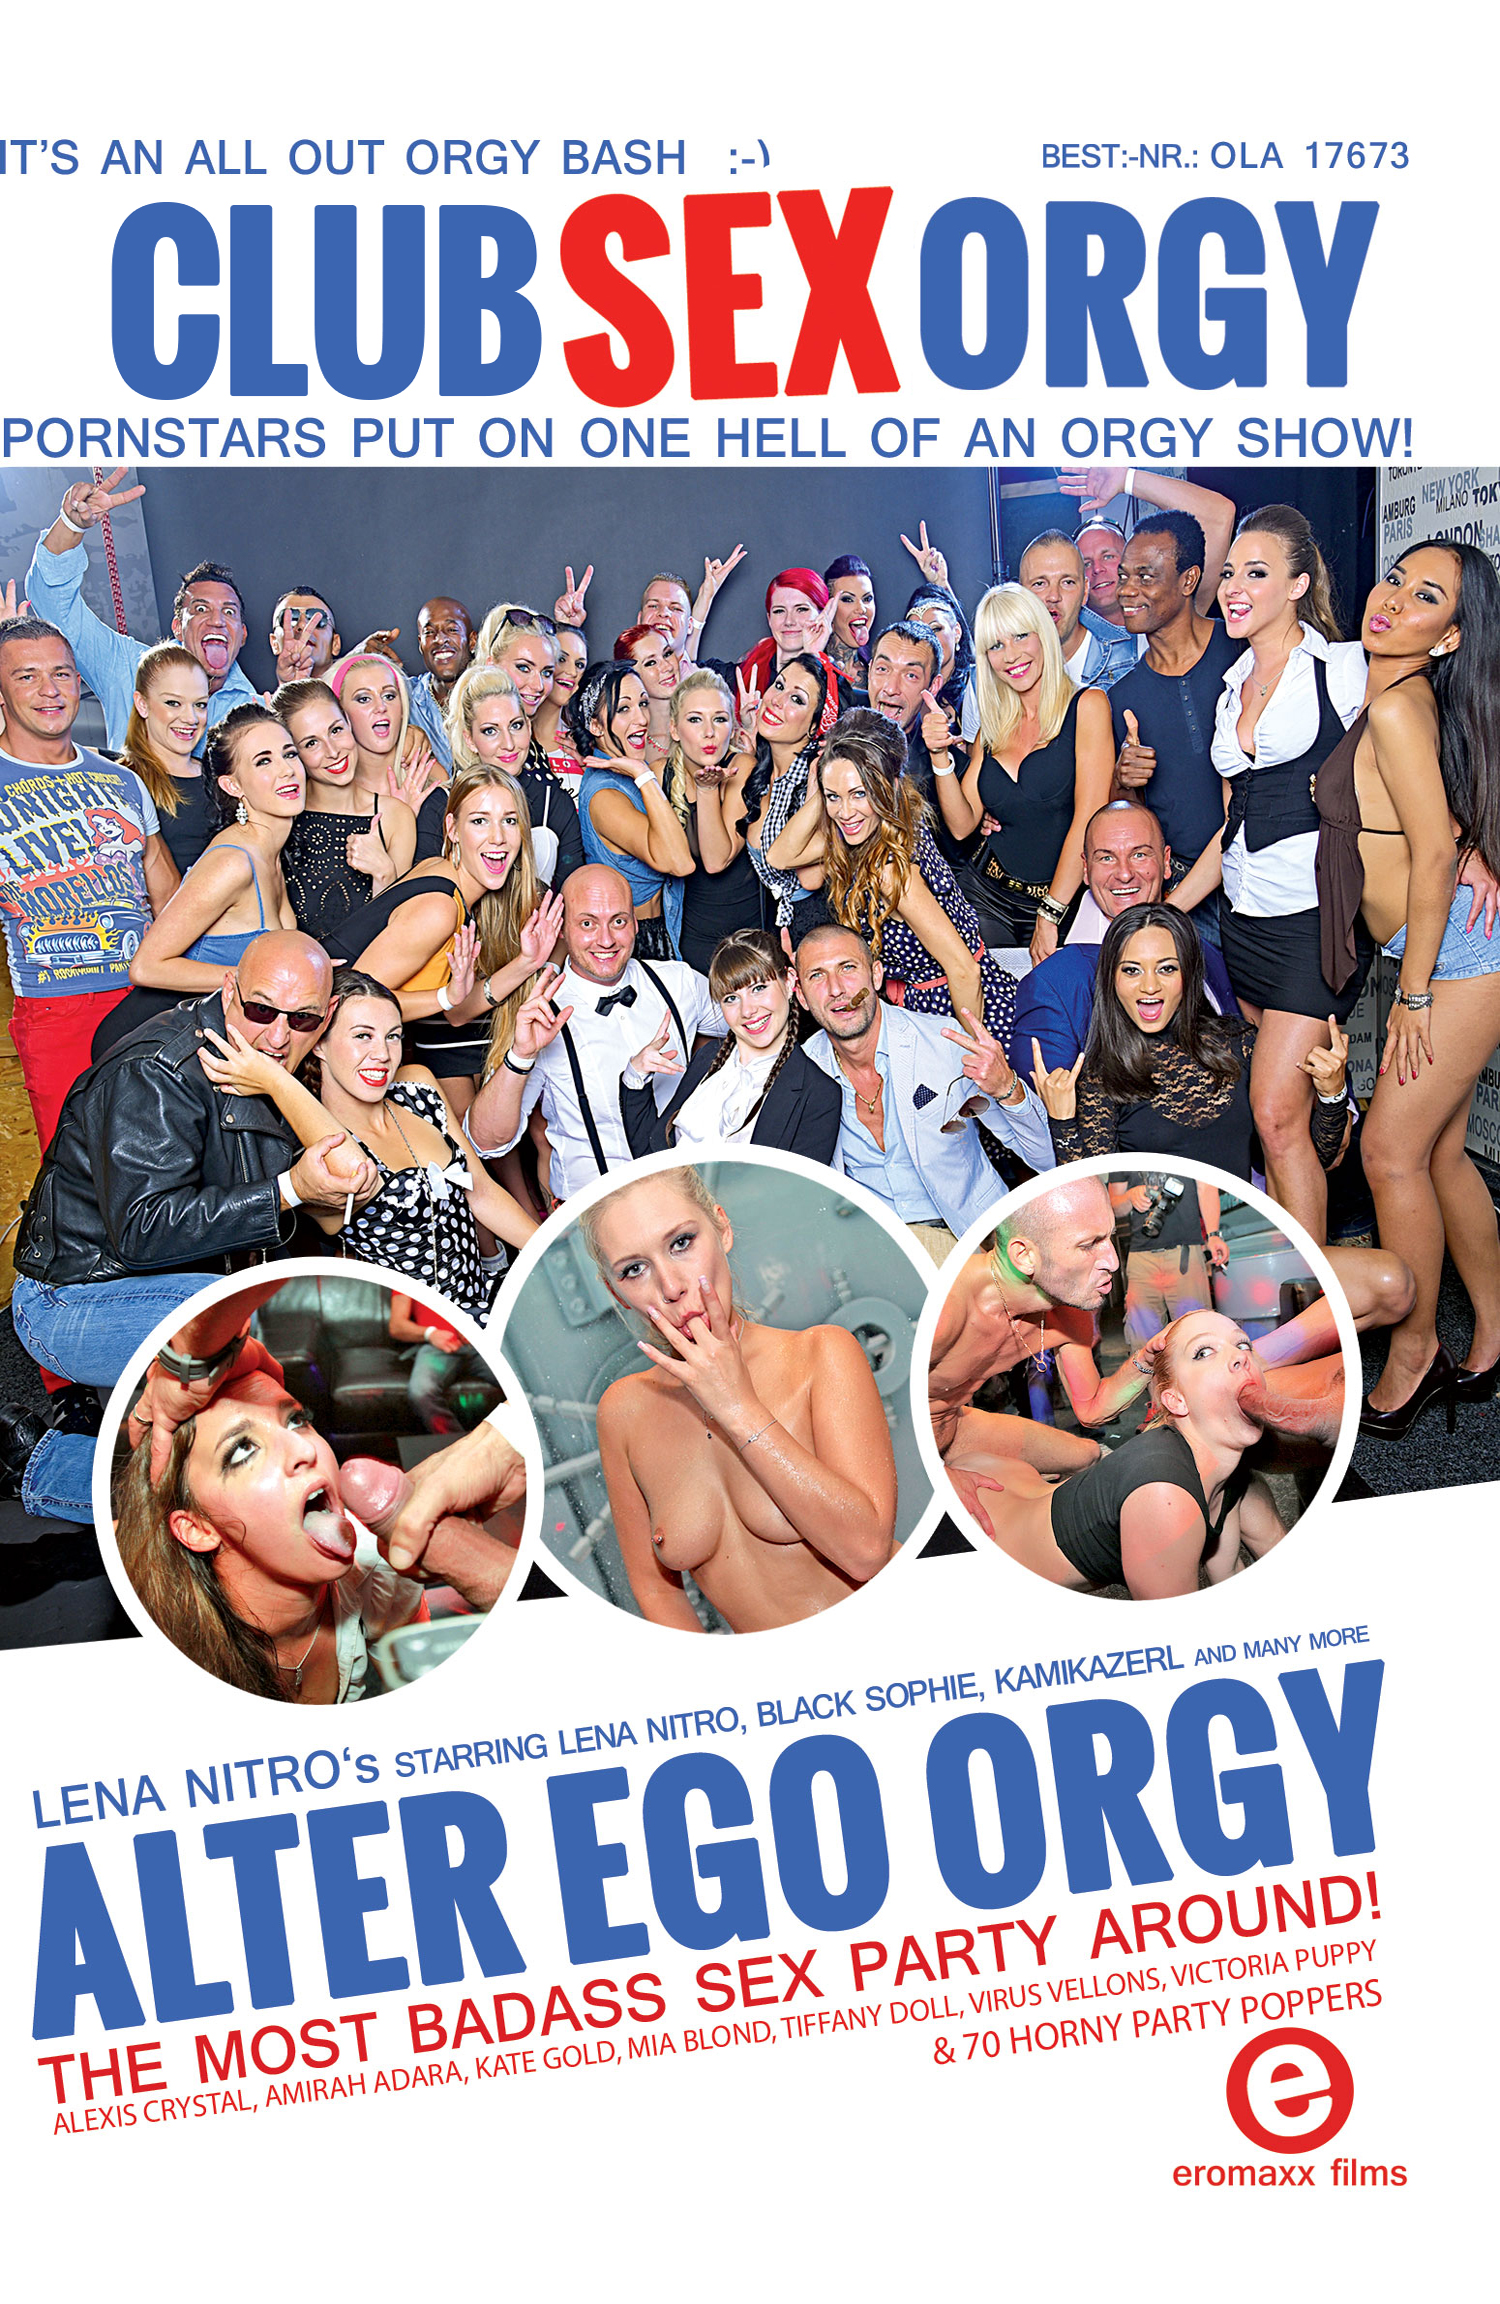 Club Sex Orgy - Alter Ego Orgy Porn Video Art